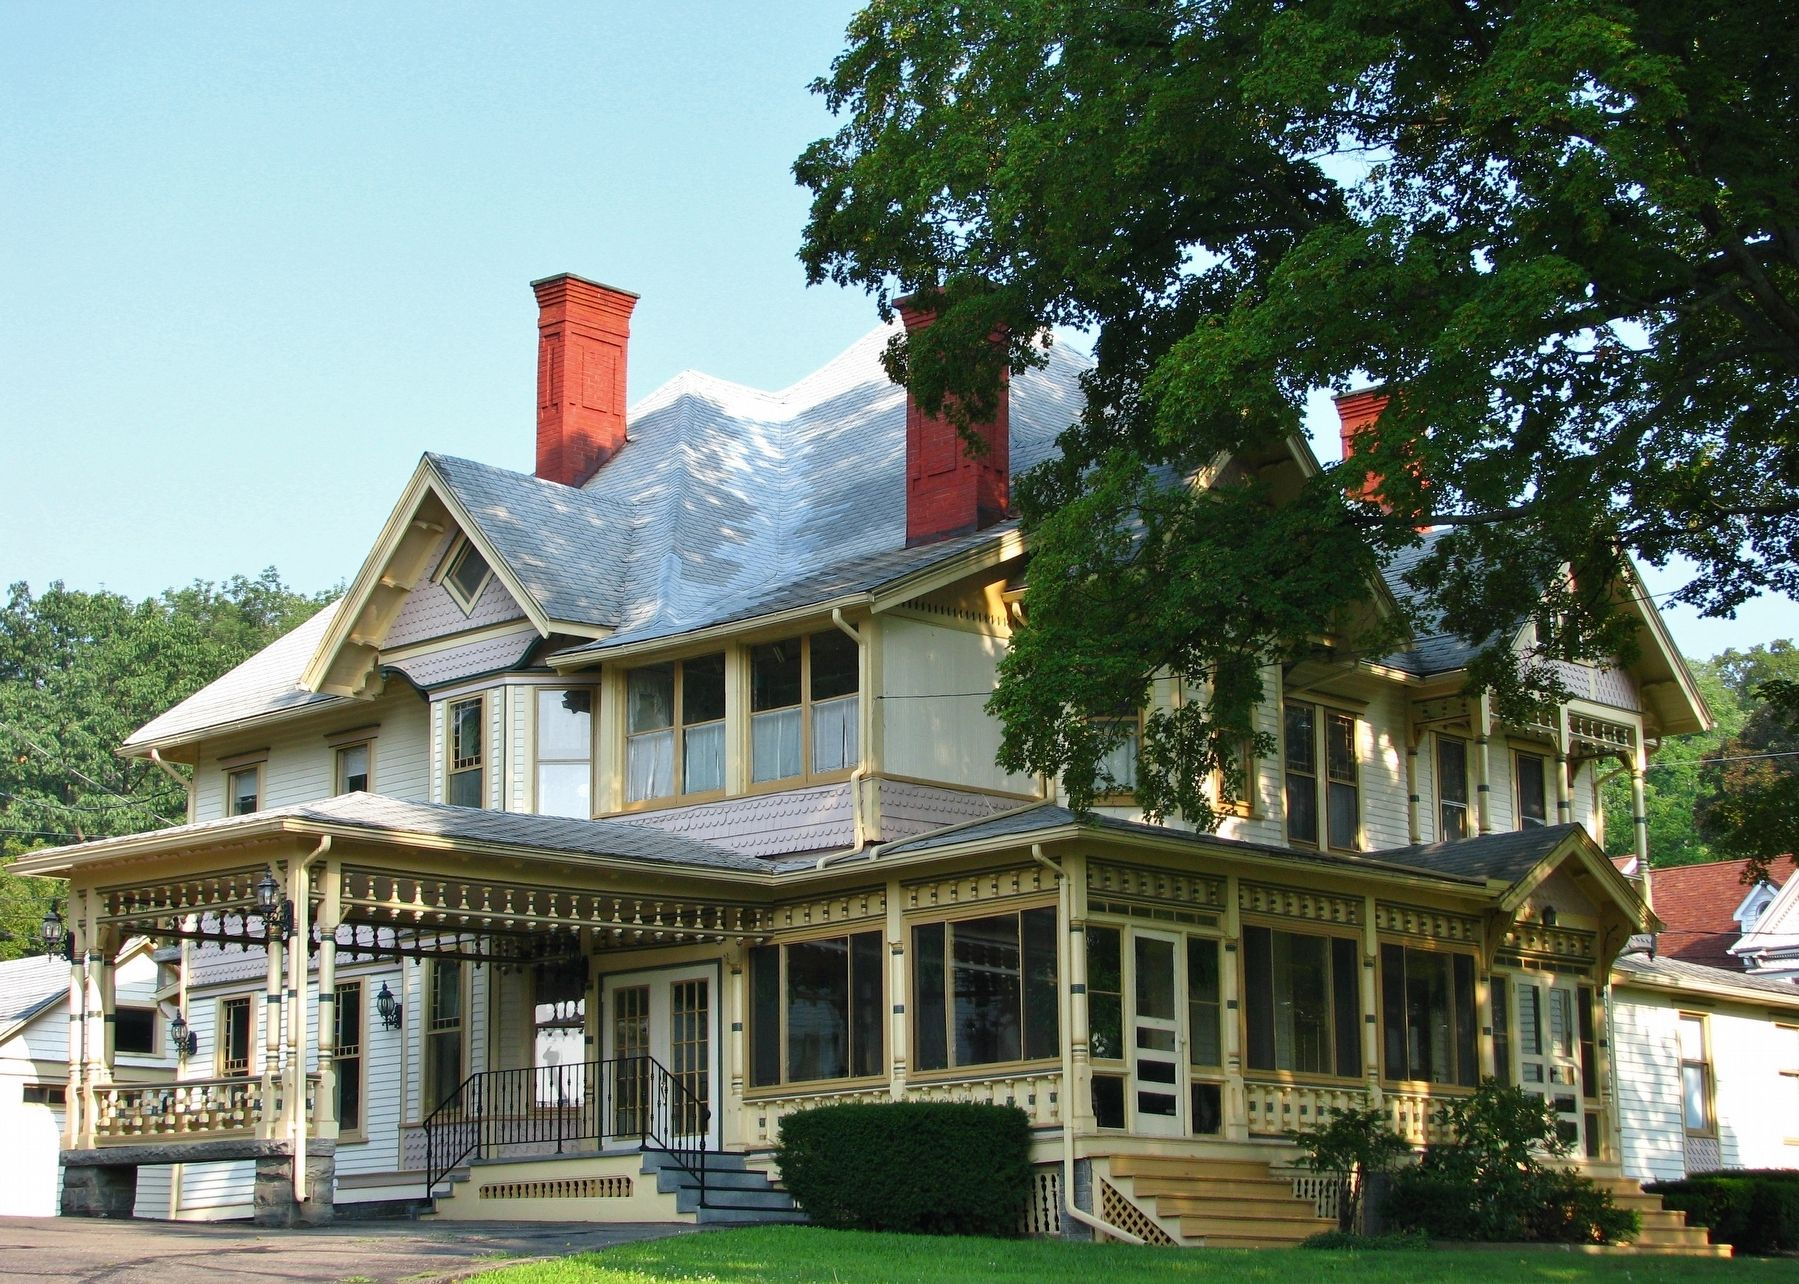 James H. Hawes House (<i>southeast corner view</i>) image. Click for full size.